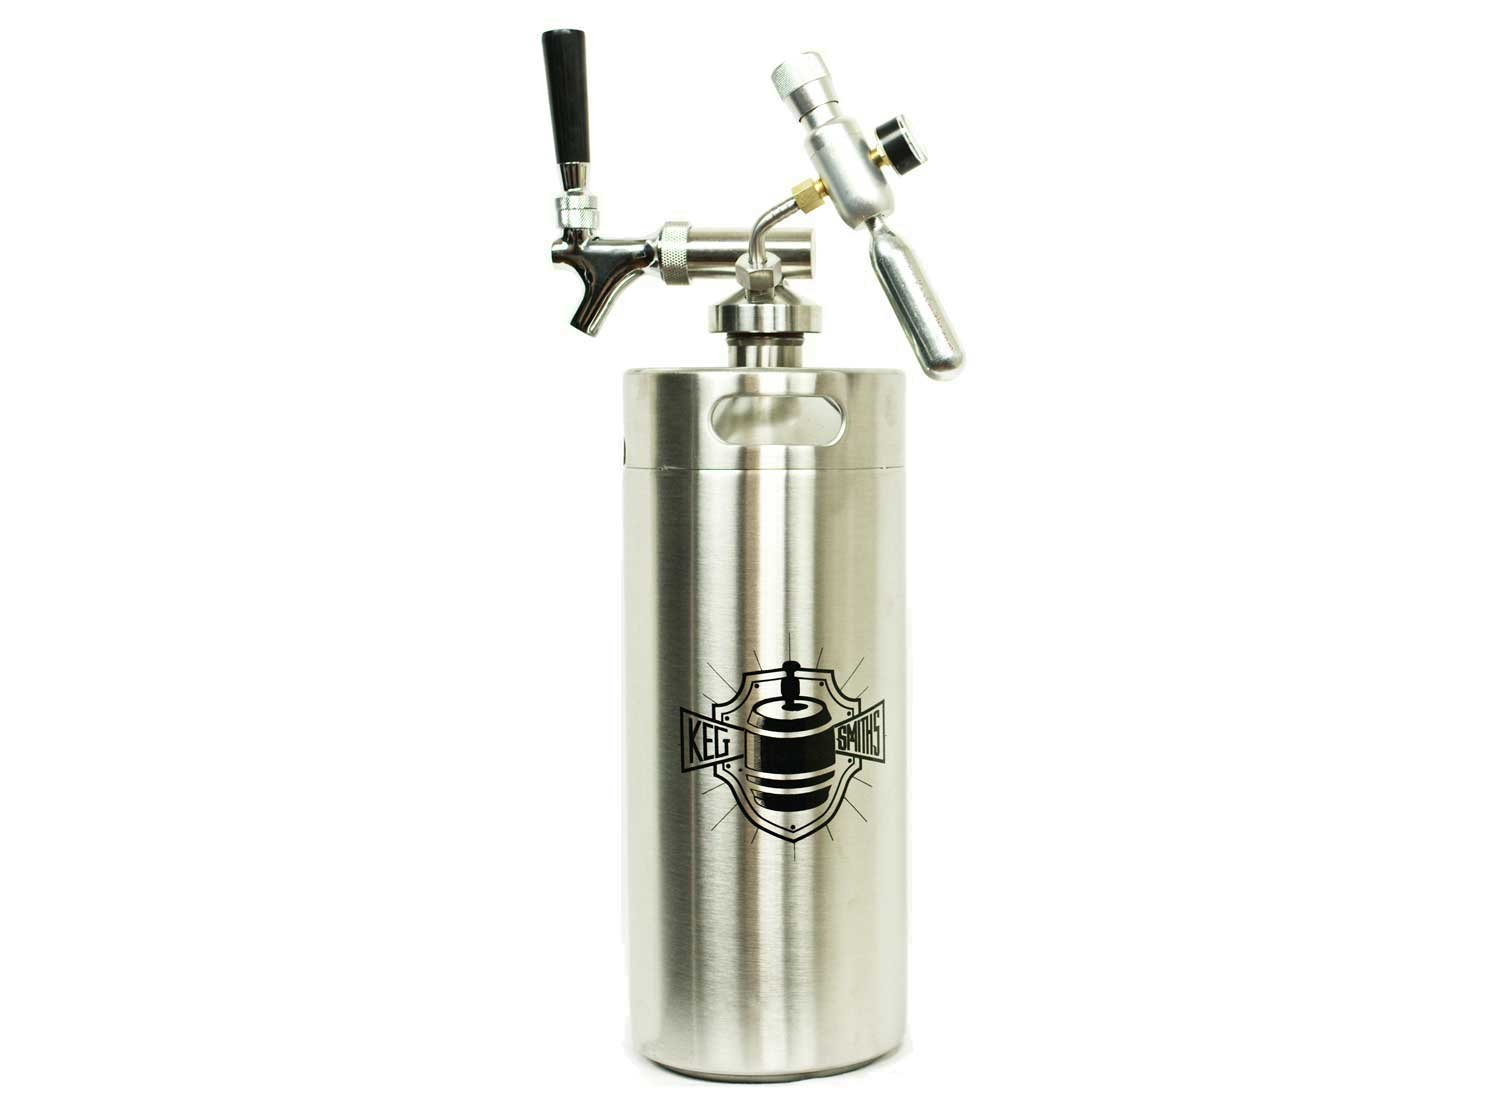 Keg Smiths 128 oz Portable Draft Keg System | CO2 Regulated | Stainless Steel Keg | 8 Pint | Mini Keg Draft System